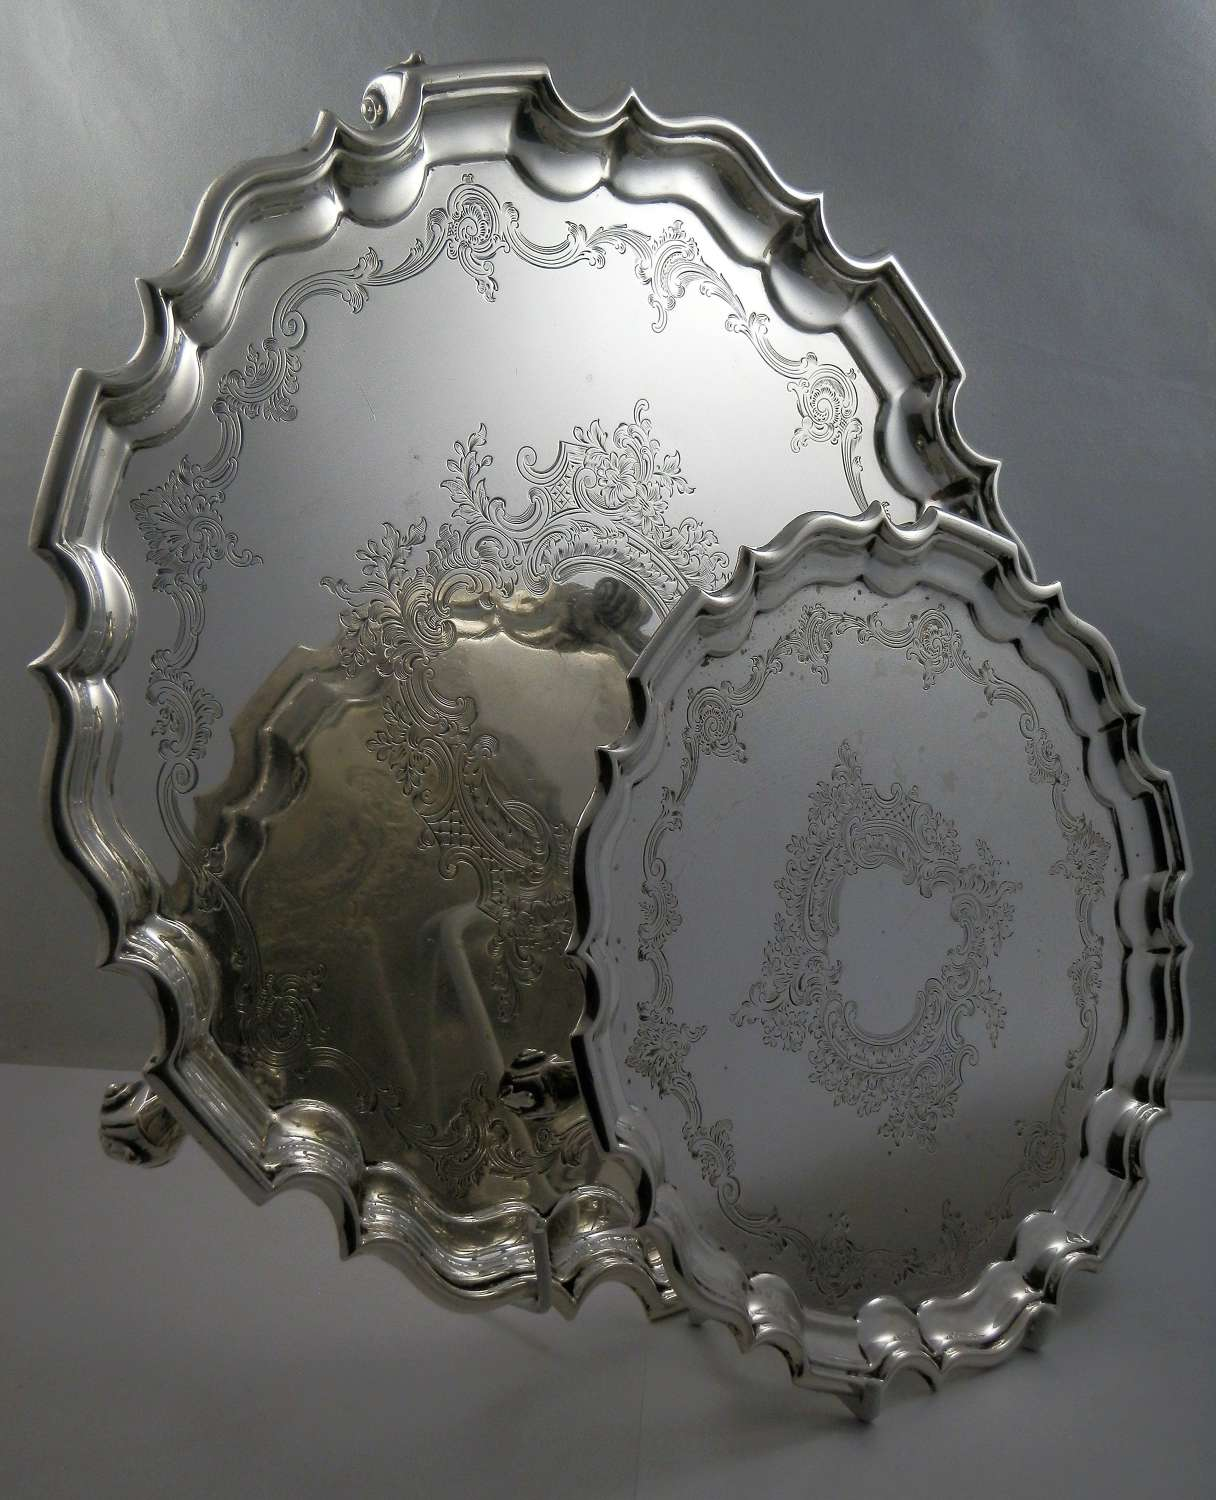 Edwardian set of two silver salvers, London 1908